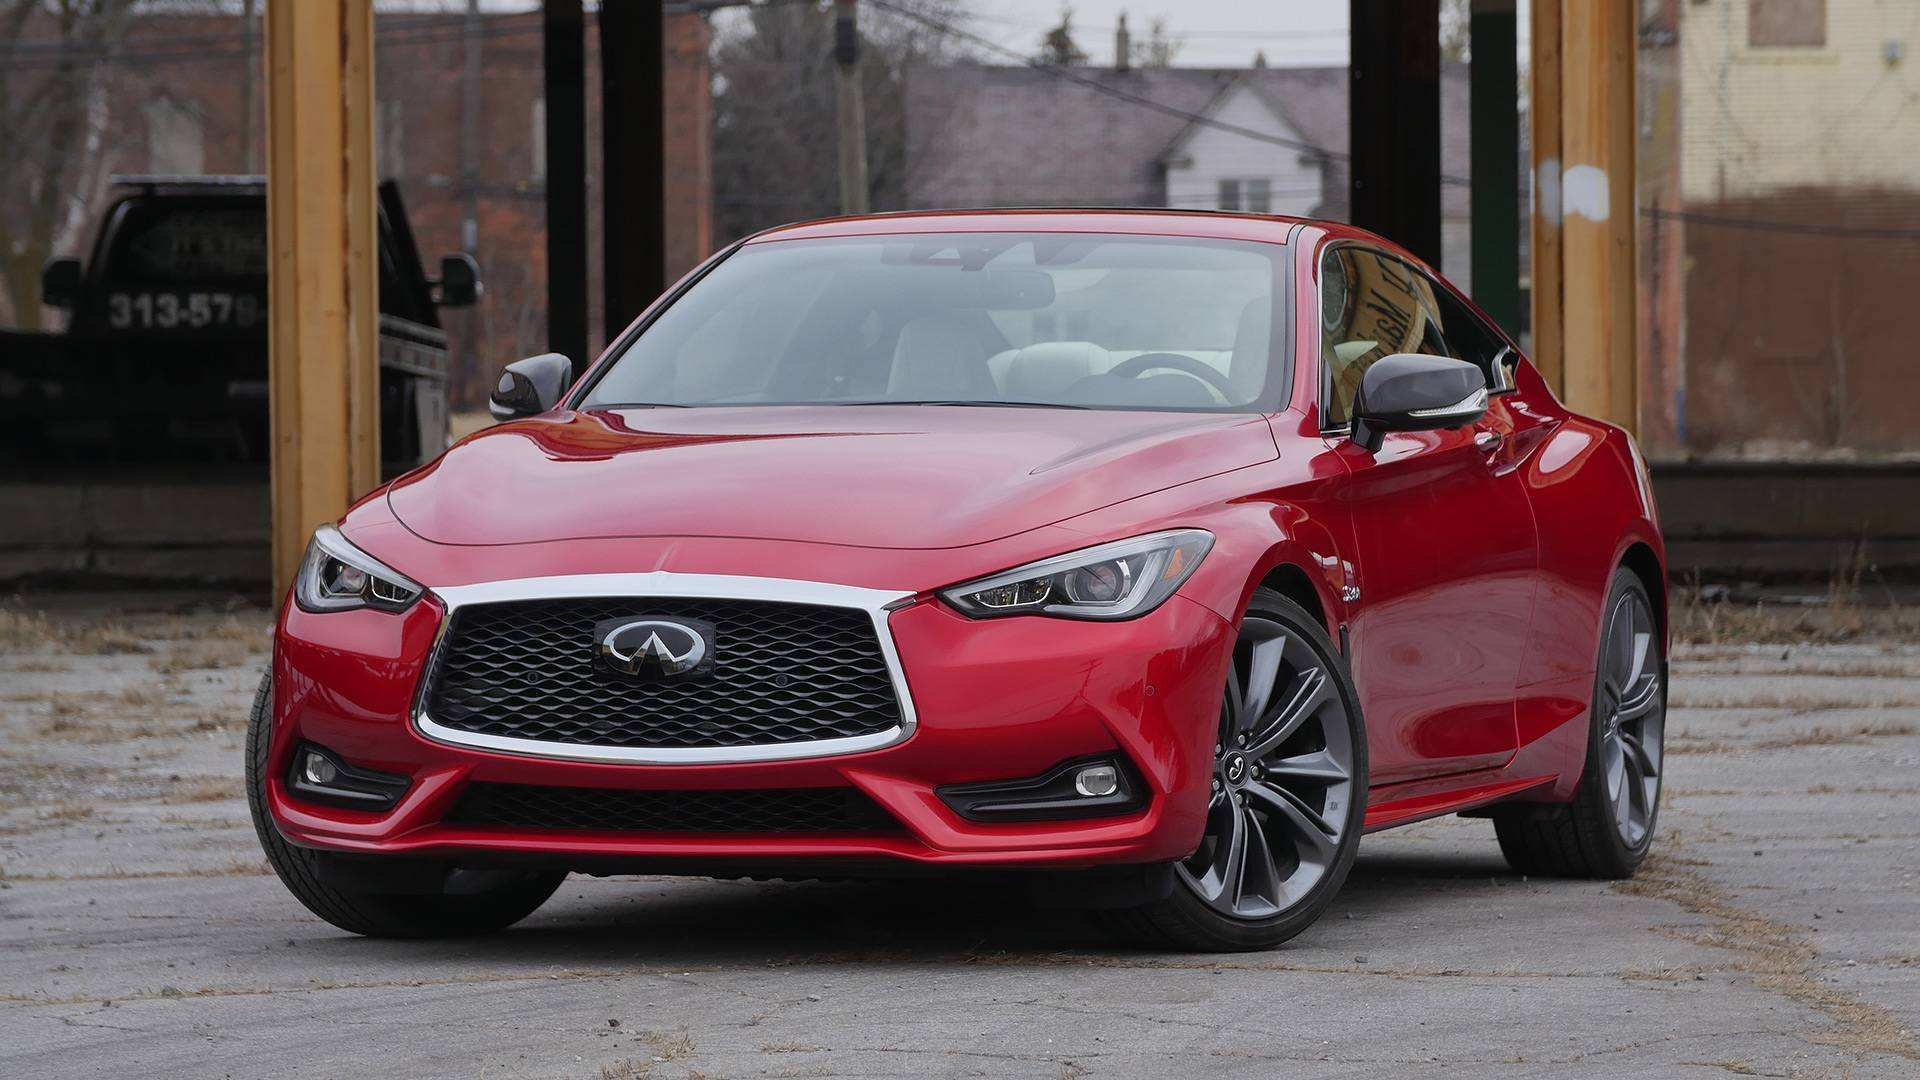 91 Gallery of Infiniti Q60 2020 Release Date with Infiniti Q60 2020